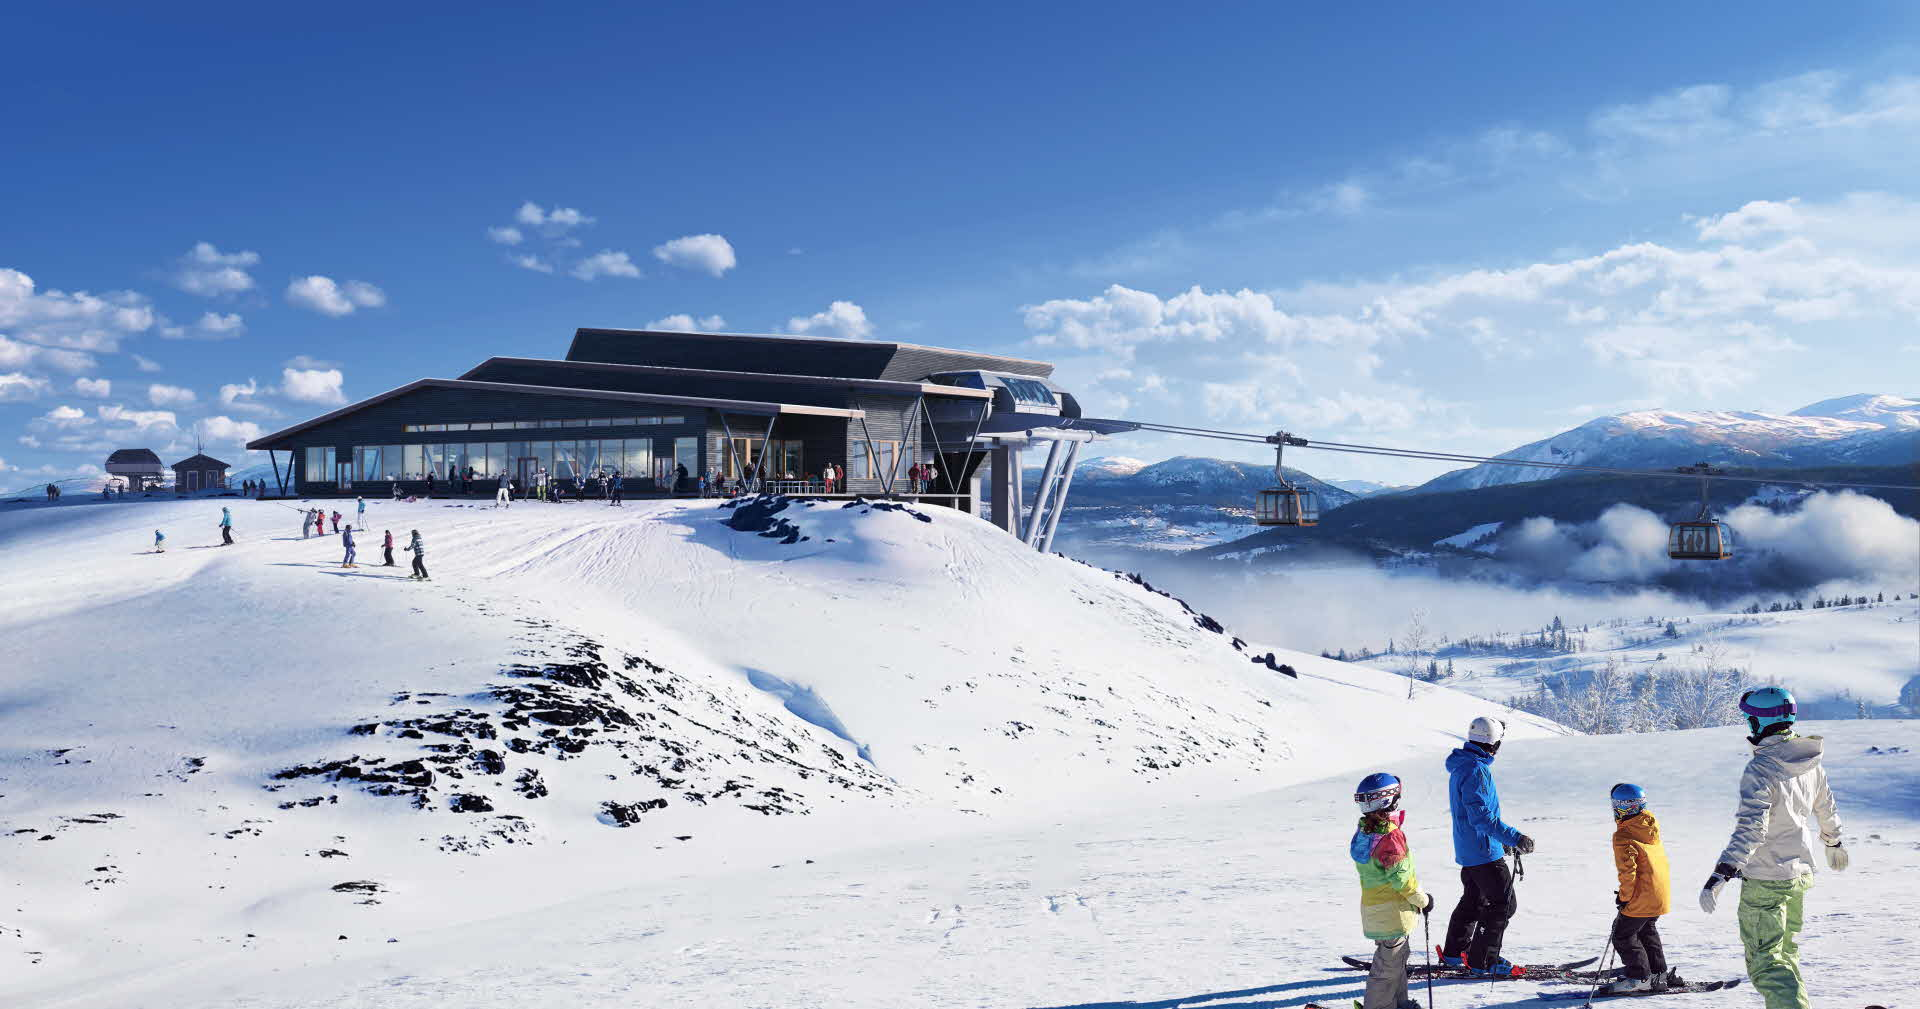 Voss Gondola top station outside restaurant in winter seen from Hangurstoppen mountain. People outside enjoying the sun in their ski gear